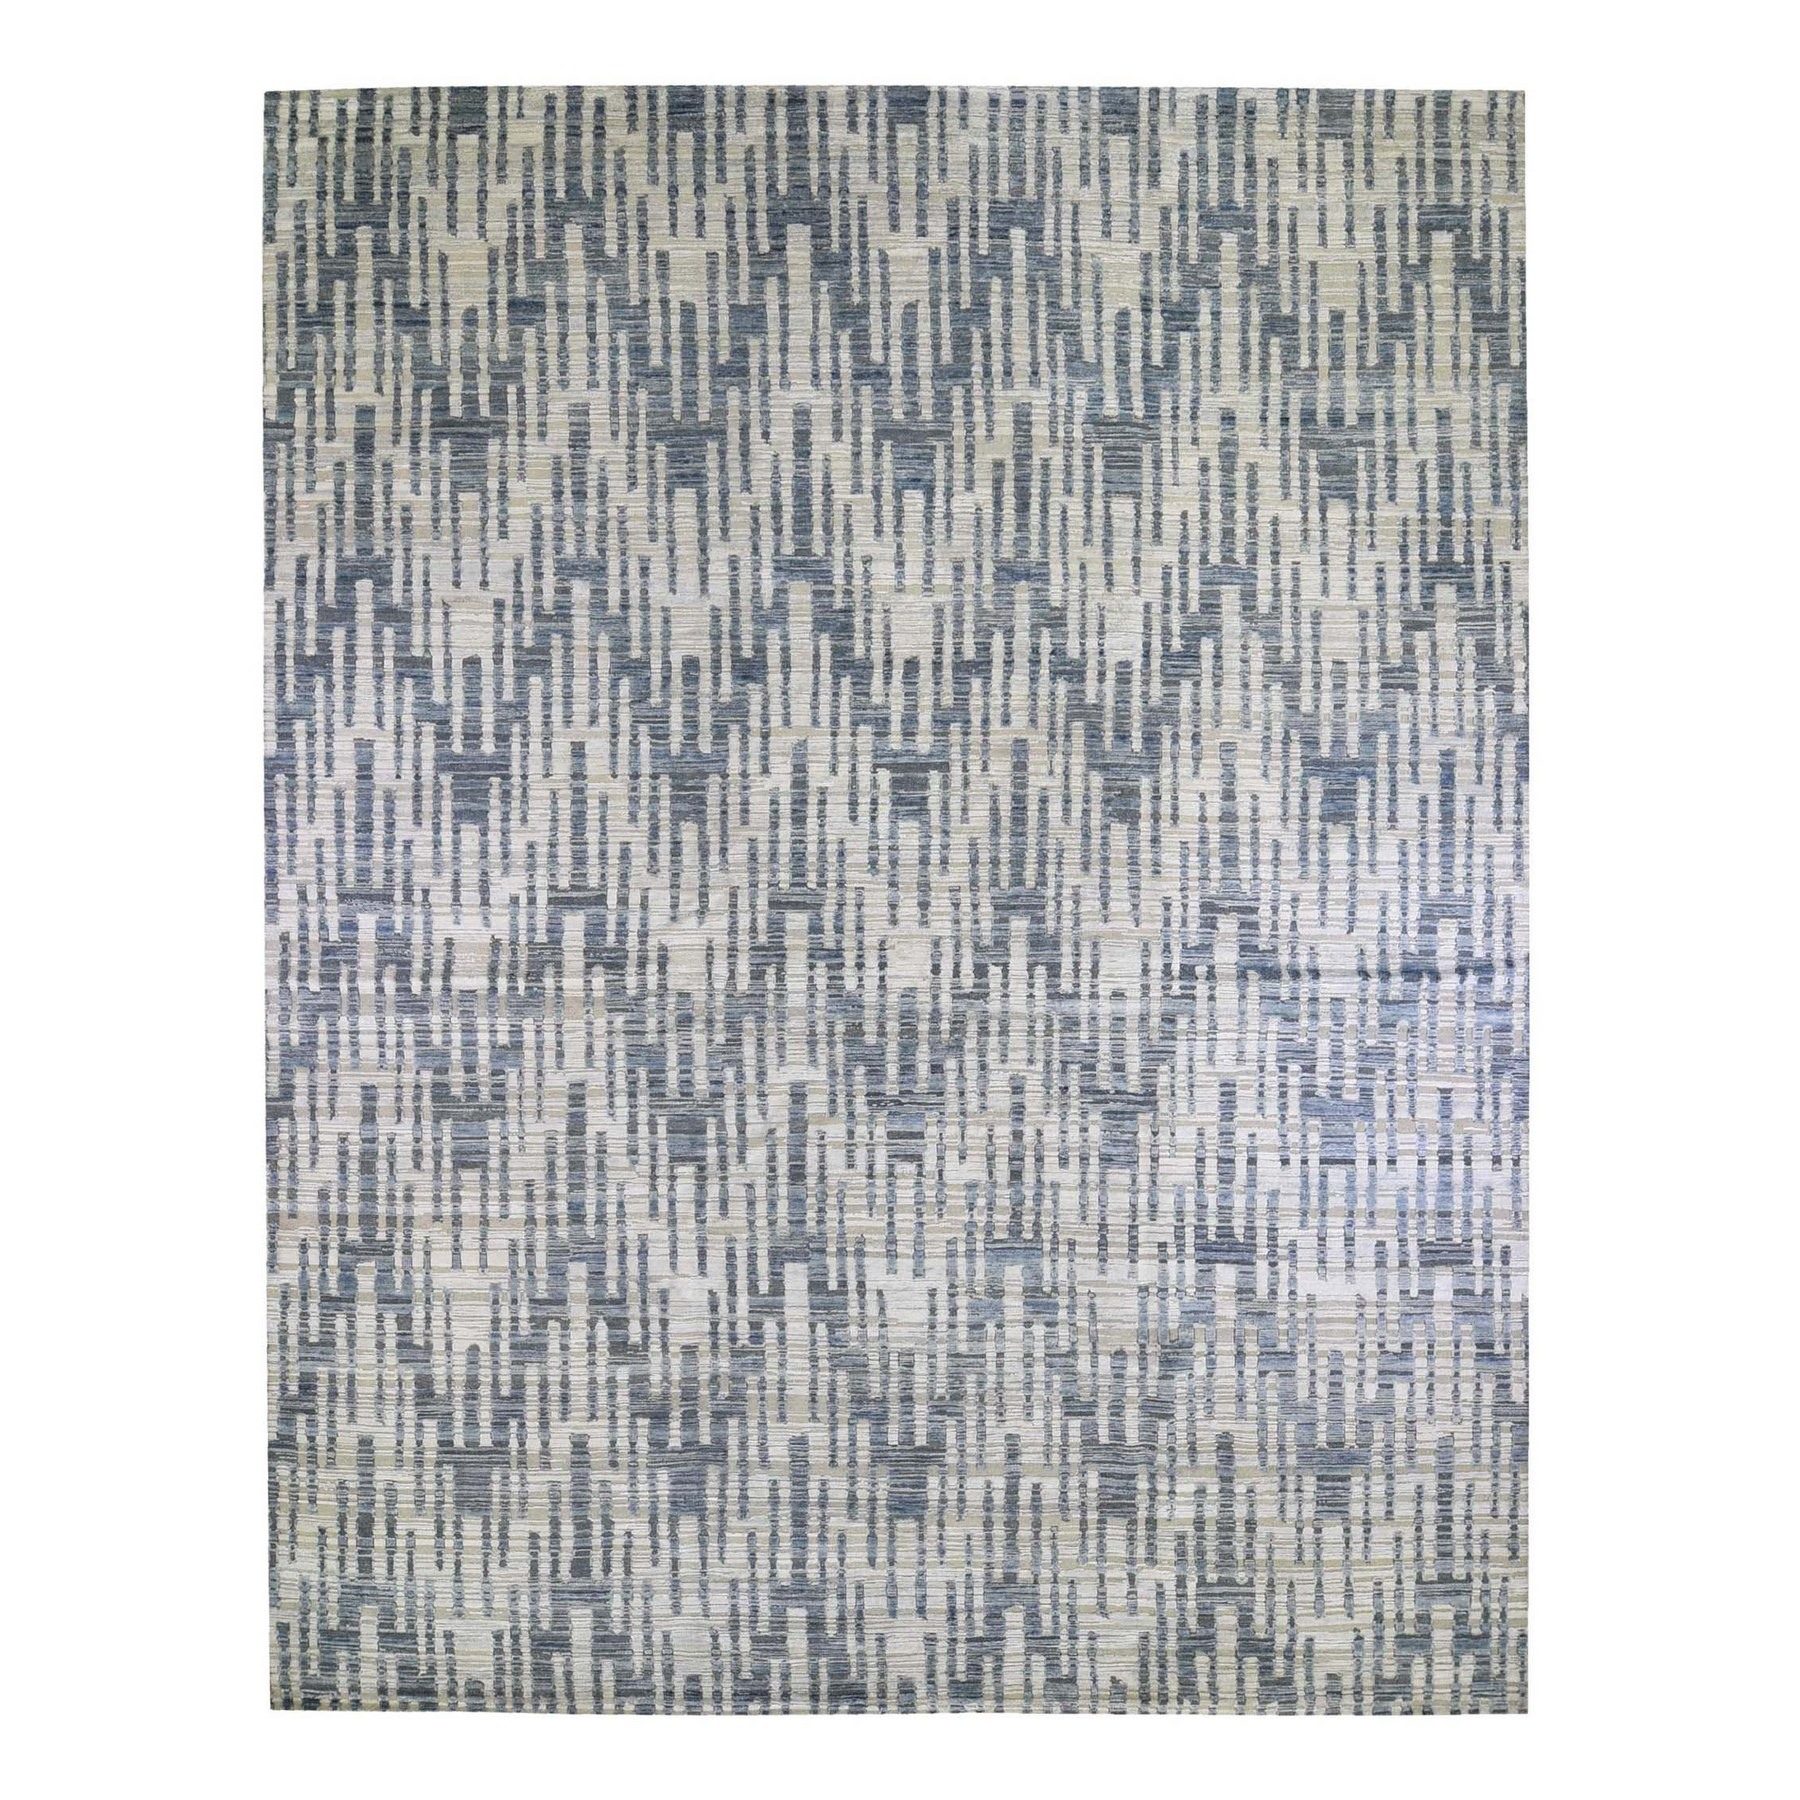 Mid Century Modern Collection Hand Knotted Blue Rug No: 1132778